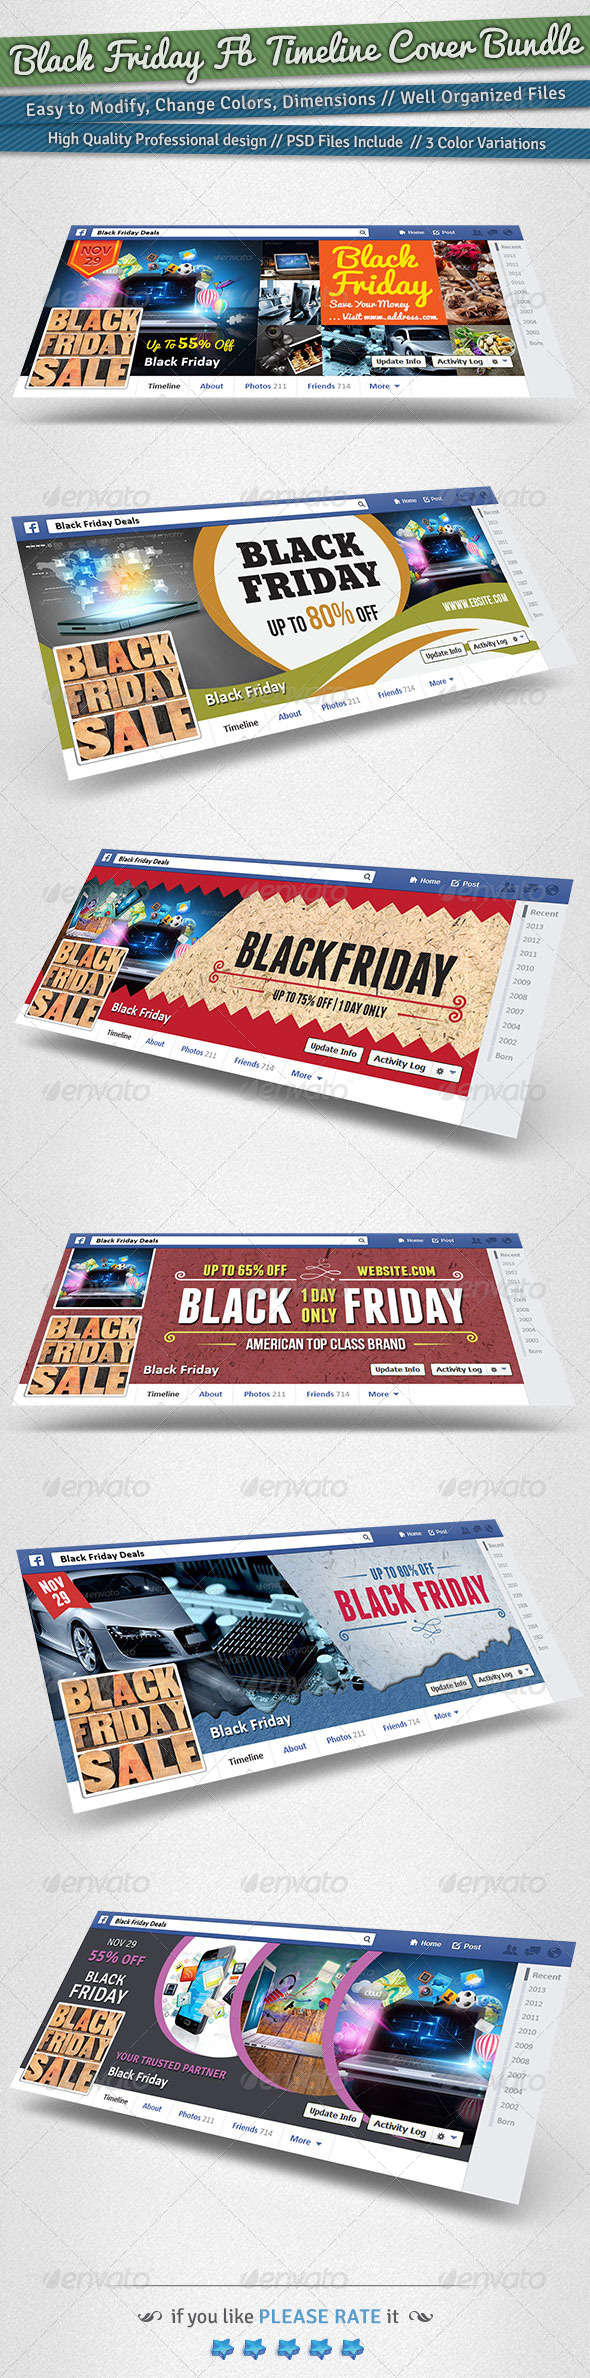 Black Friday / Promotion FB Timeline Cover Bundle